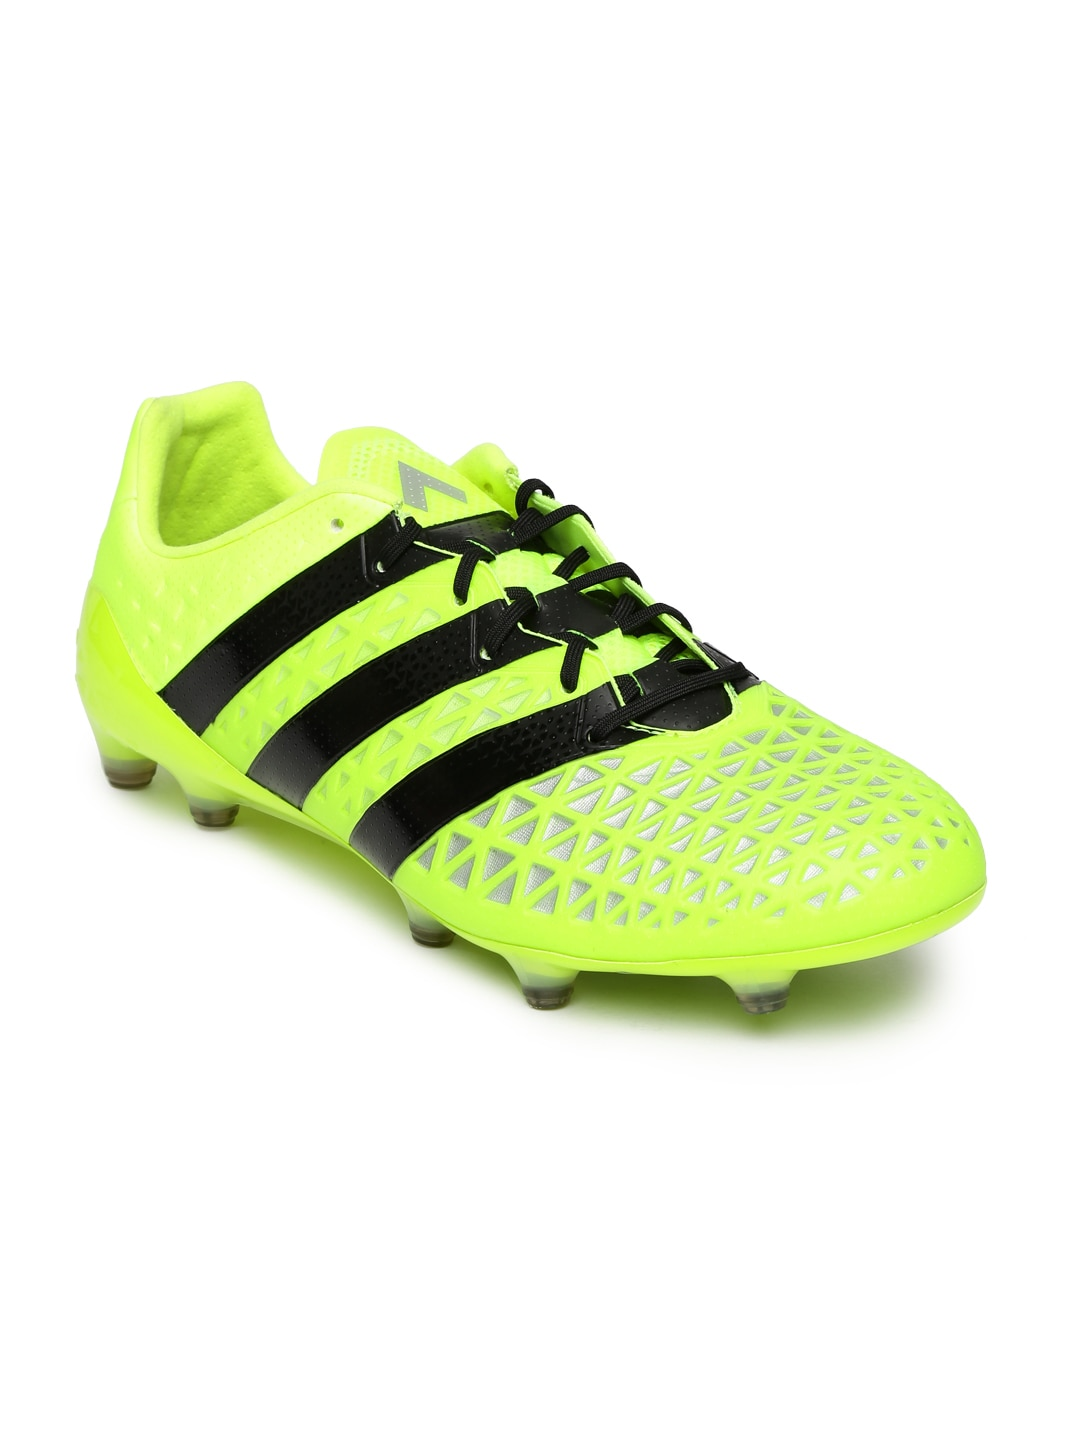 881a369b7 Adidas s79663 Men Neon Green Ace 16 1 Fg Football Shoes- Price in India